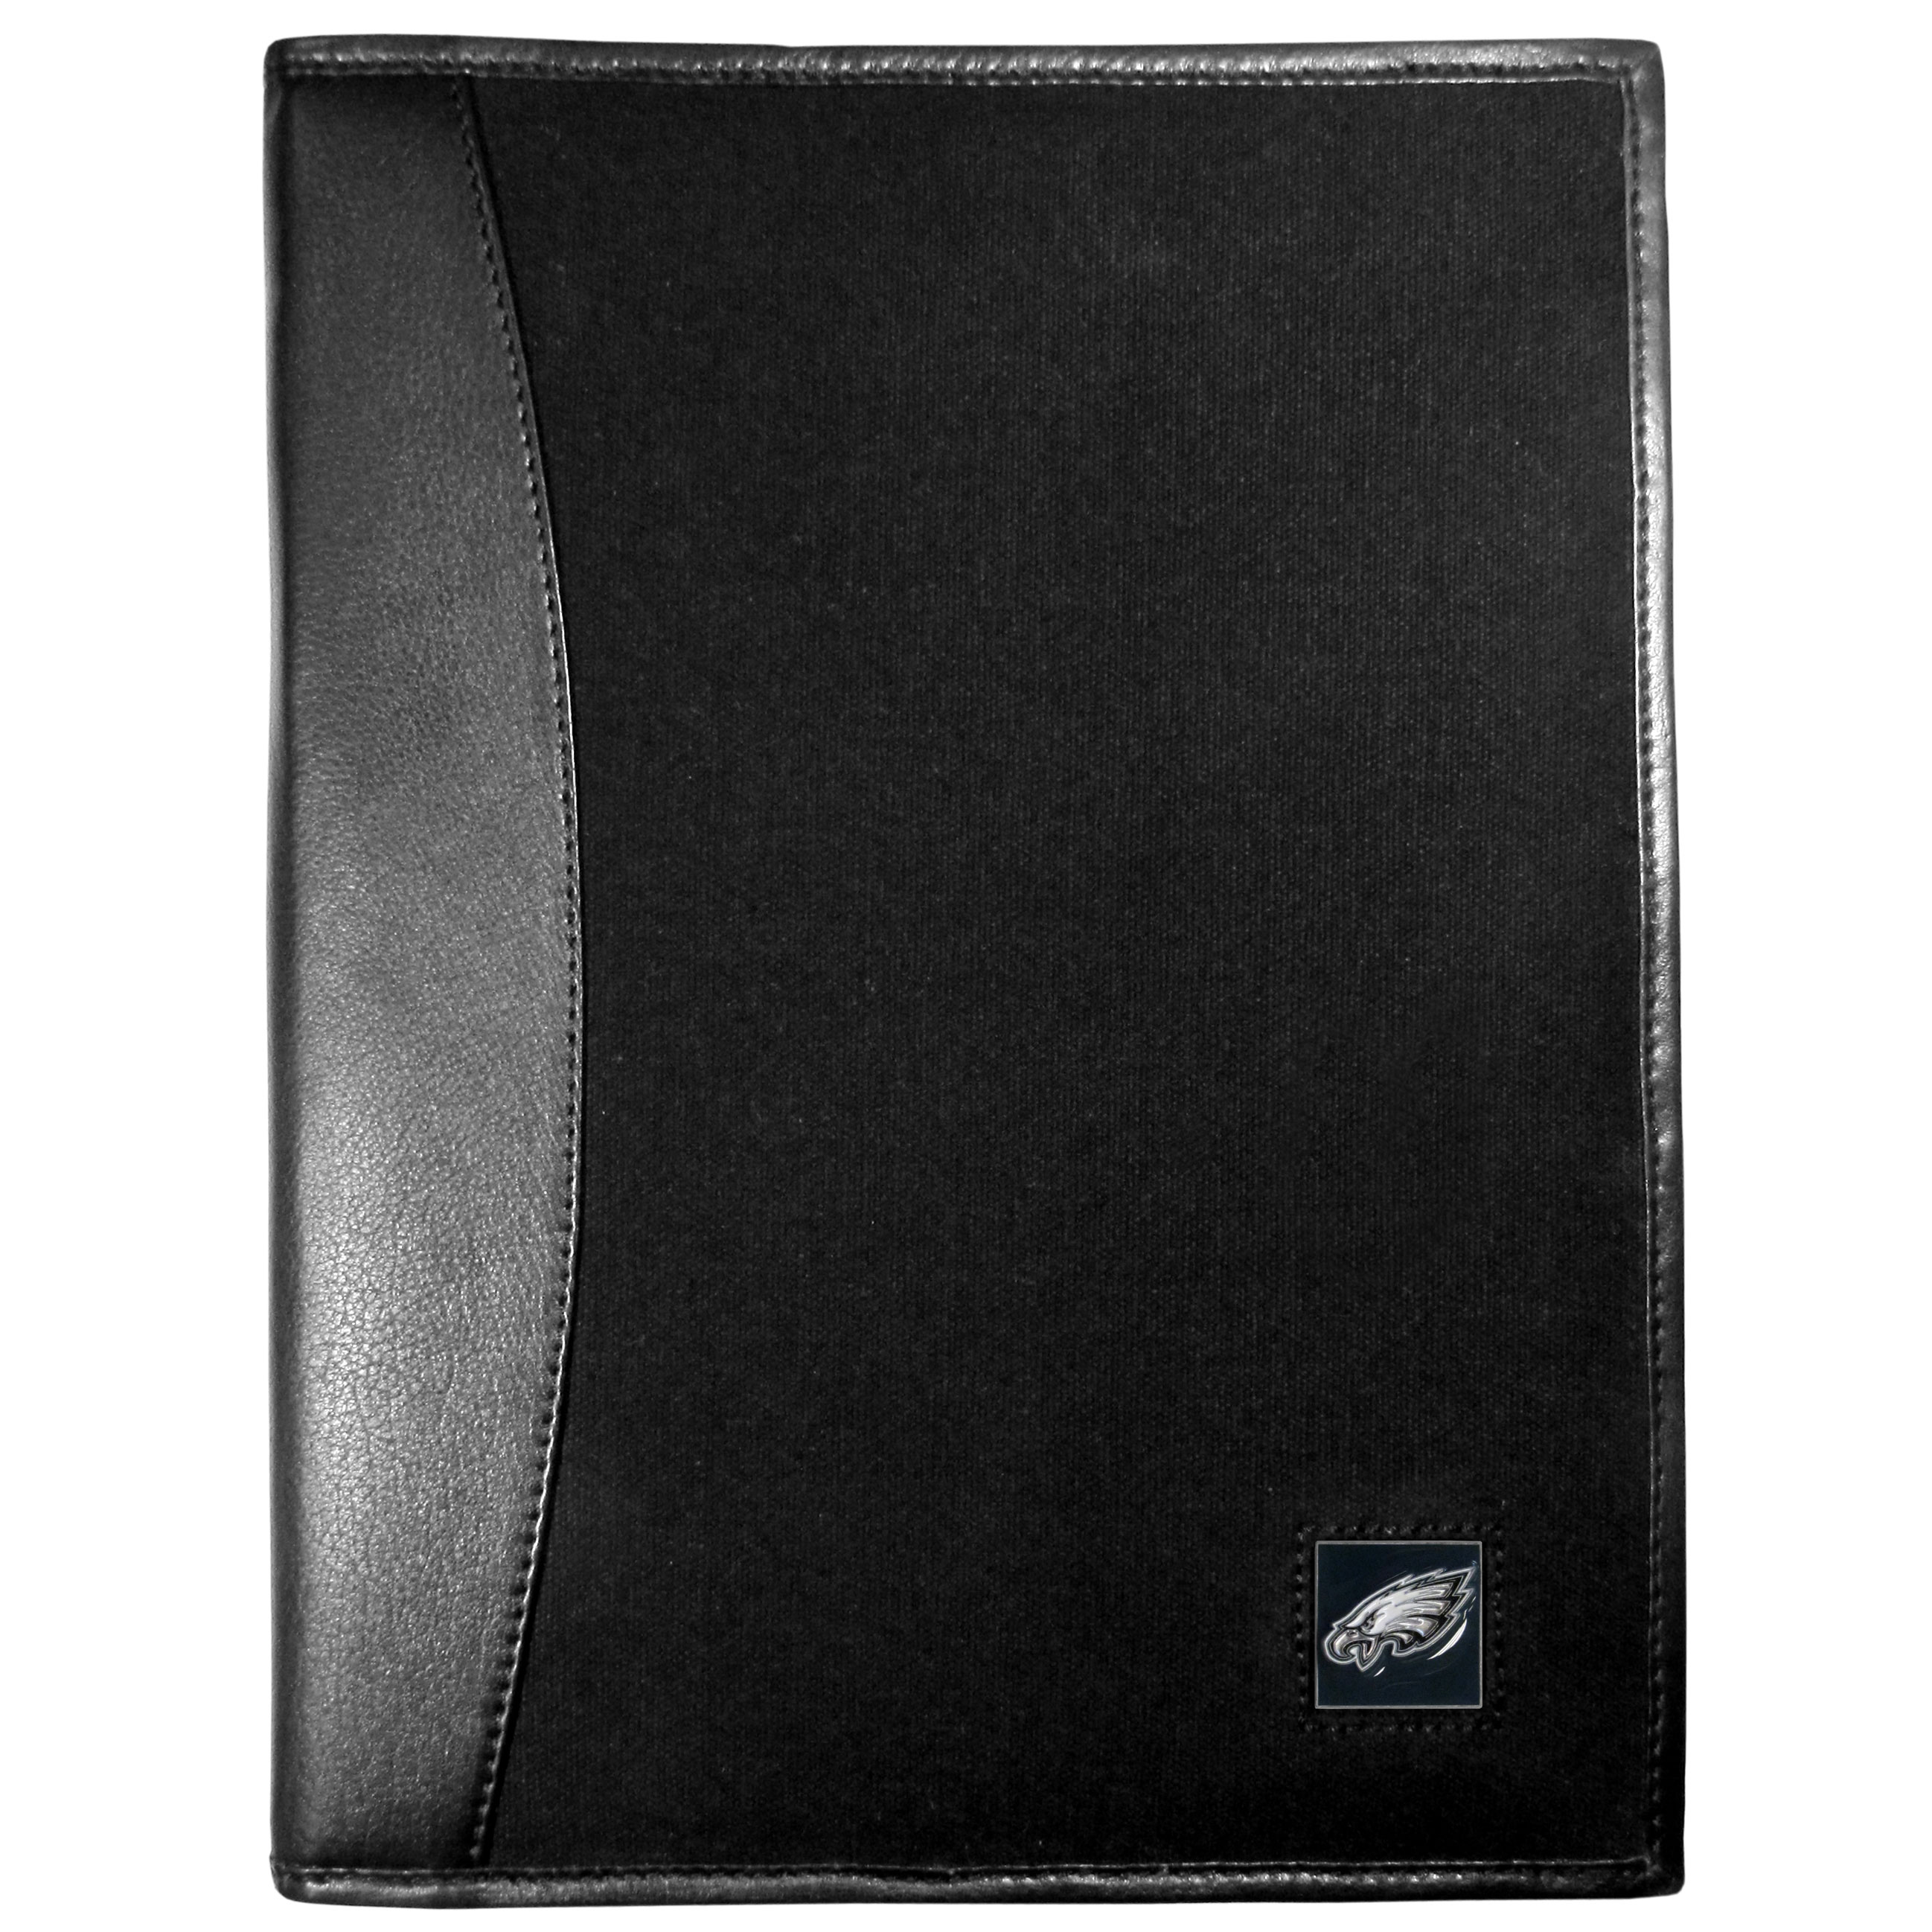 Philadelphia Eagles Leather and Canvas Padfolio - Our leather and canvas padfolio perfectly blends form and function. The attractive portfolio is bound in fine grain leather with an attractive canvas finish and the interior is a soft nylon. This high quality business accessory also features a fully cast metal Philadelphia Eagles emblem that is subtly set in the corner of the organizer. It is packed with features like 6 card slots for badges, business cards, hotel keys or credit cards and ID with a large pocket for loose papers and a writing tablet slot making it a must-have for the professional on the go.